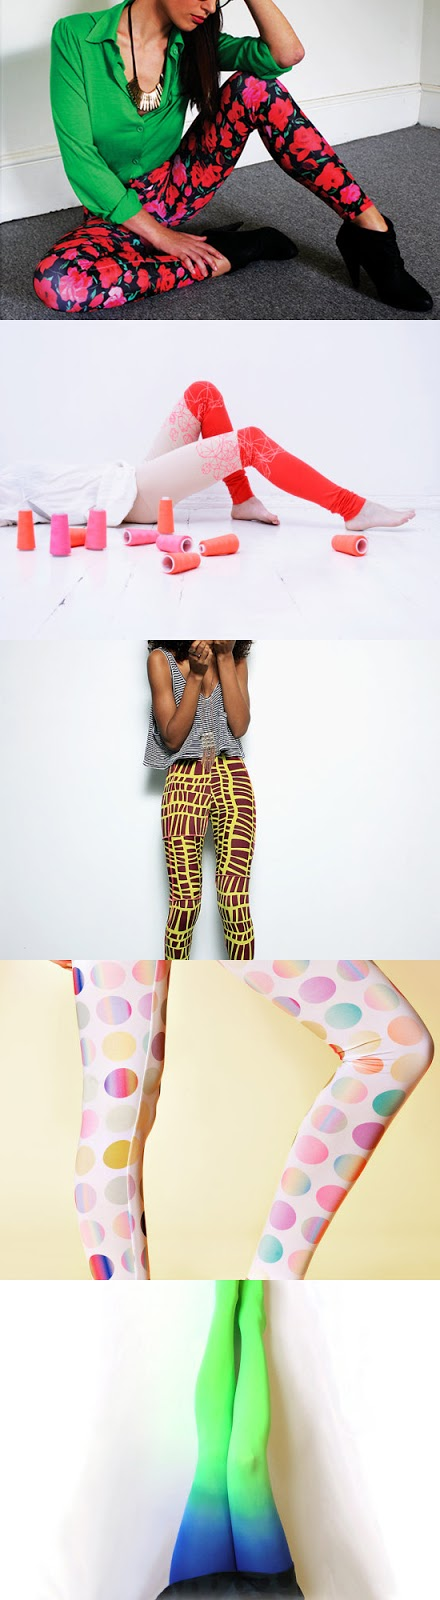 floral legging by Penny